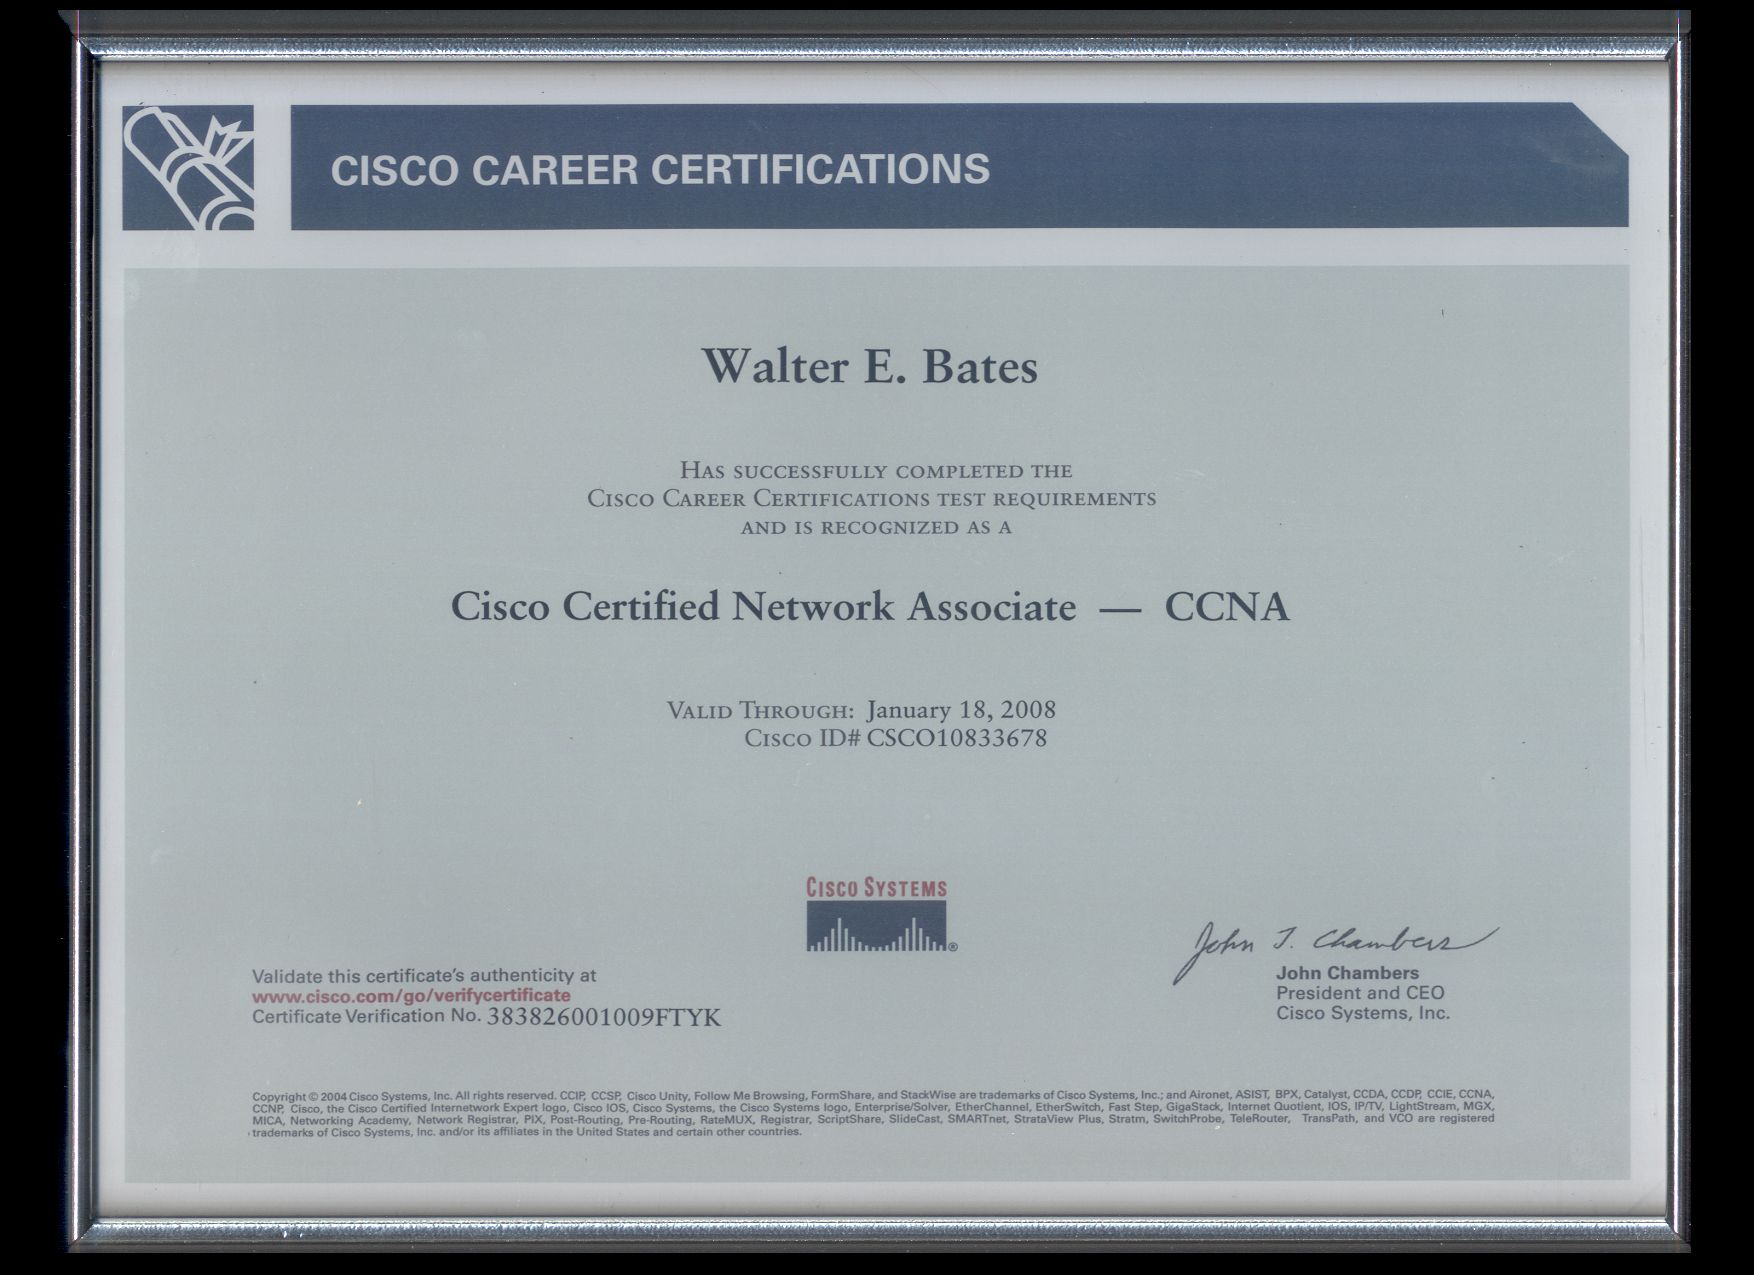 Cbt cisco ccna 640 801 2017 vol1 hell